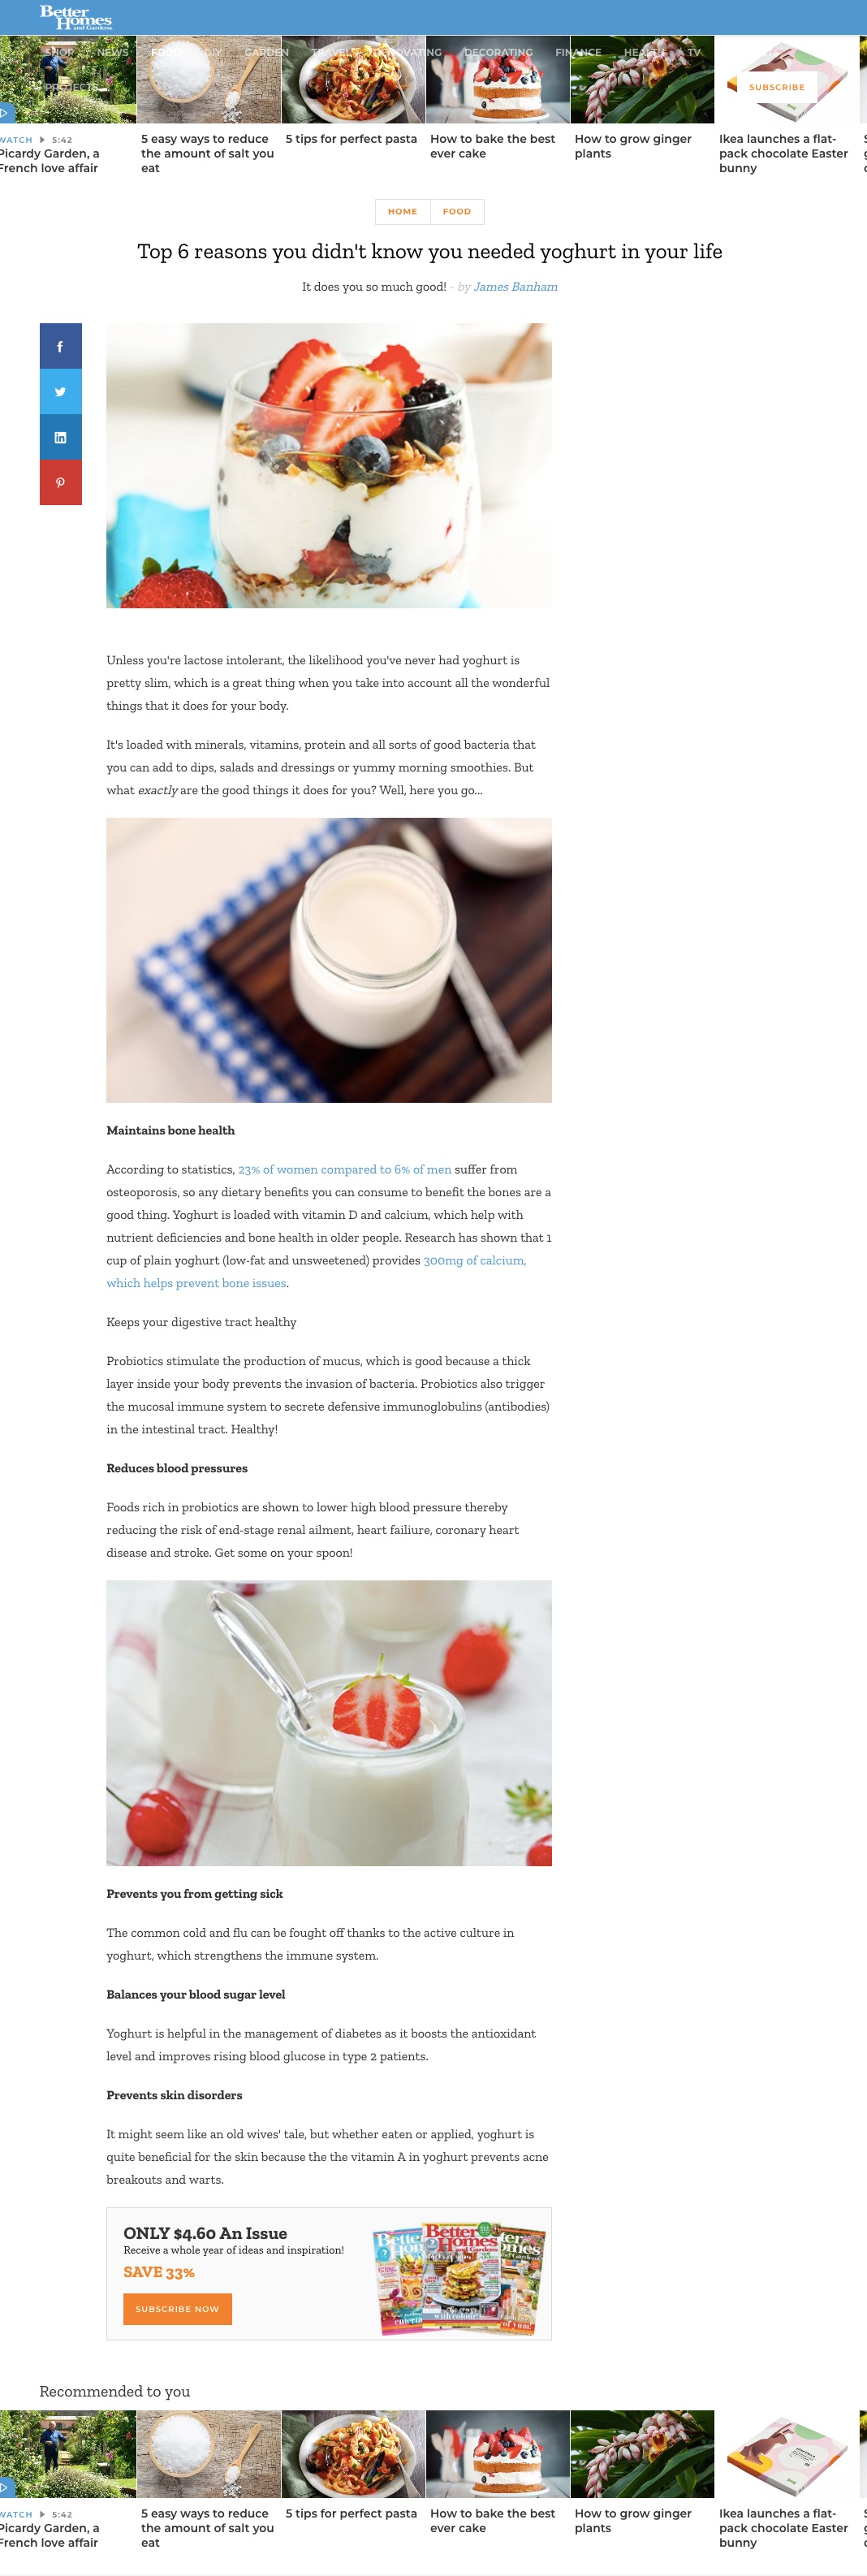 Better Homes Gardens - Top 6 reasons you didn't know you needed yoghurt in your life